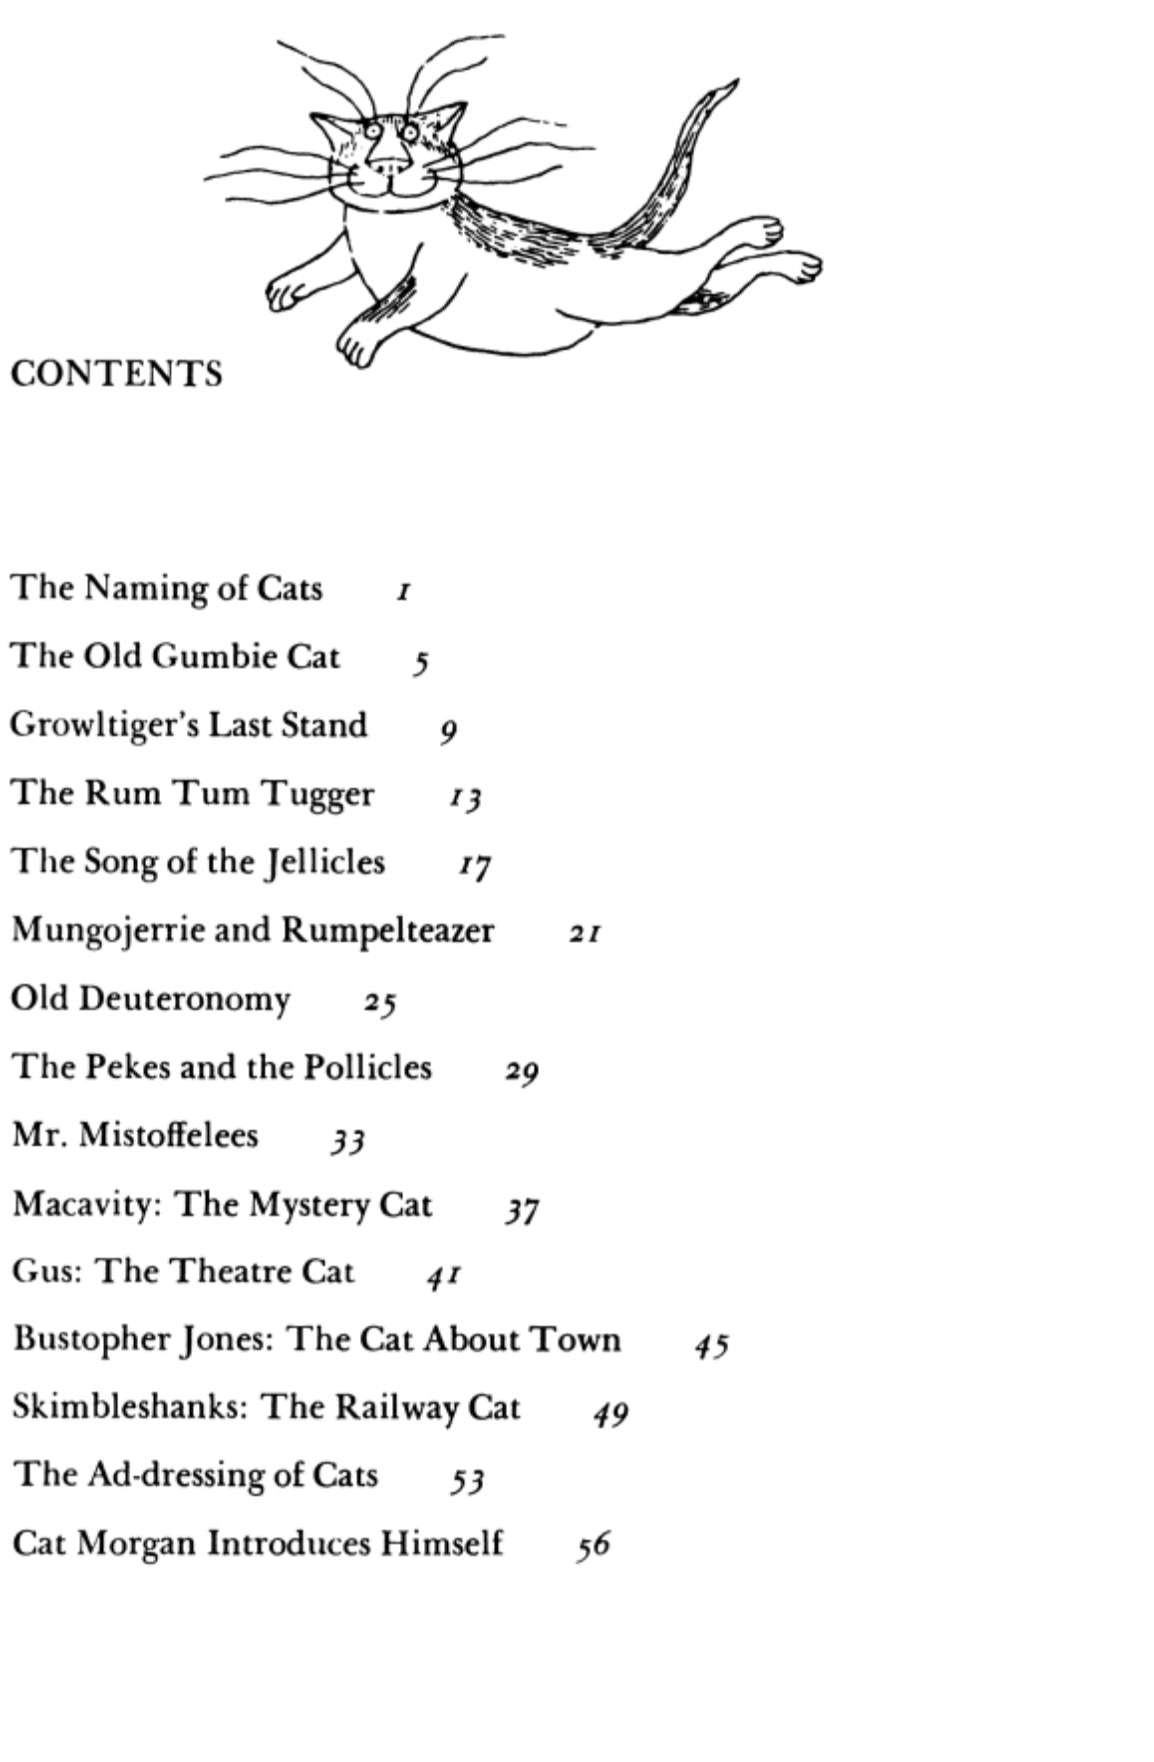 old possums cats contents